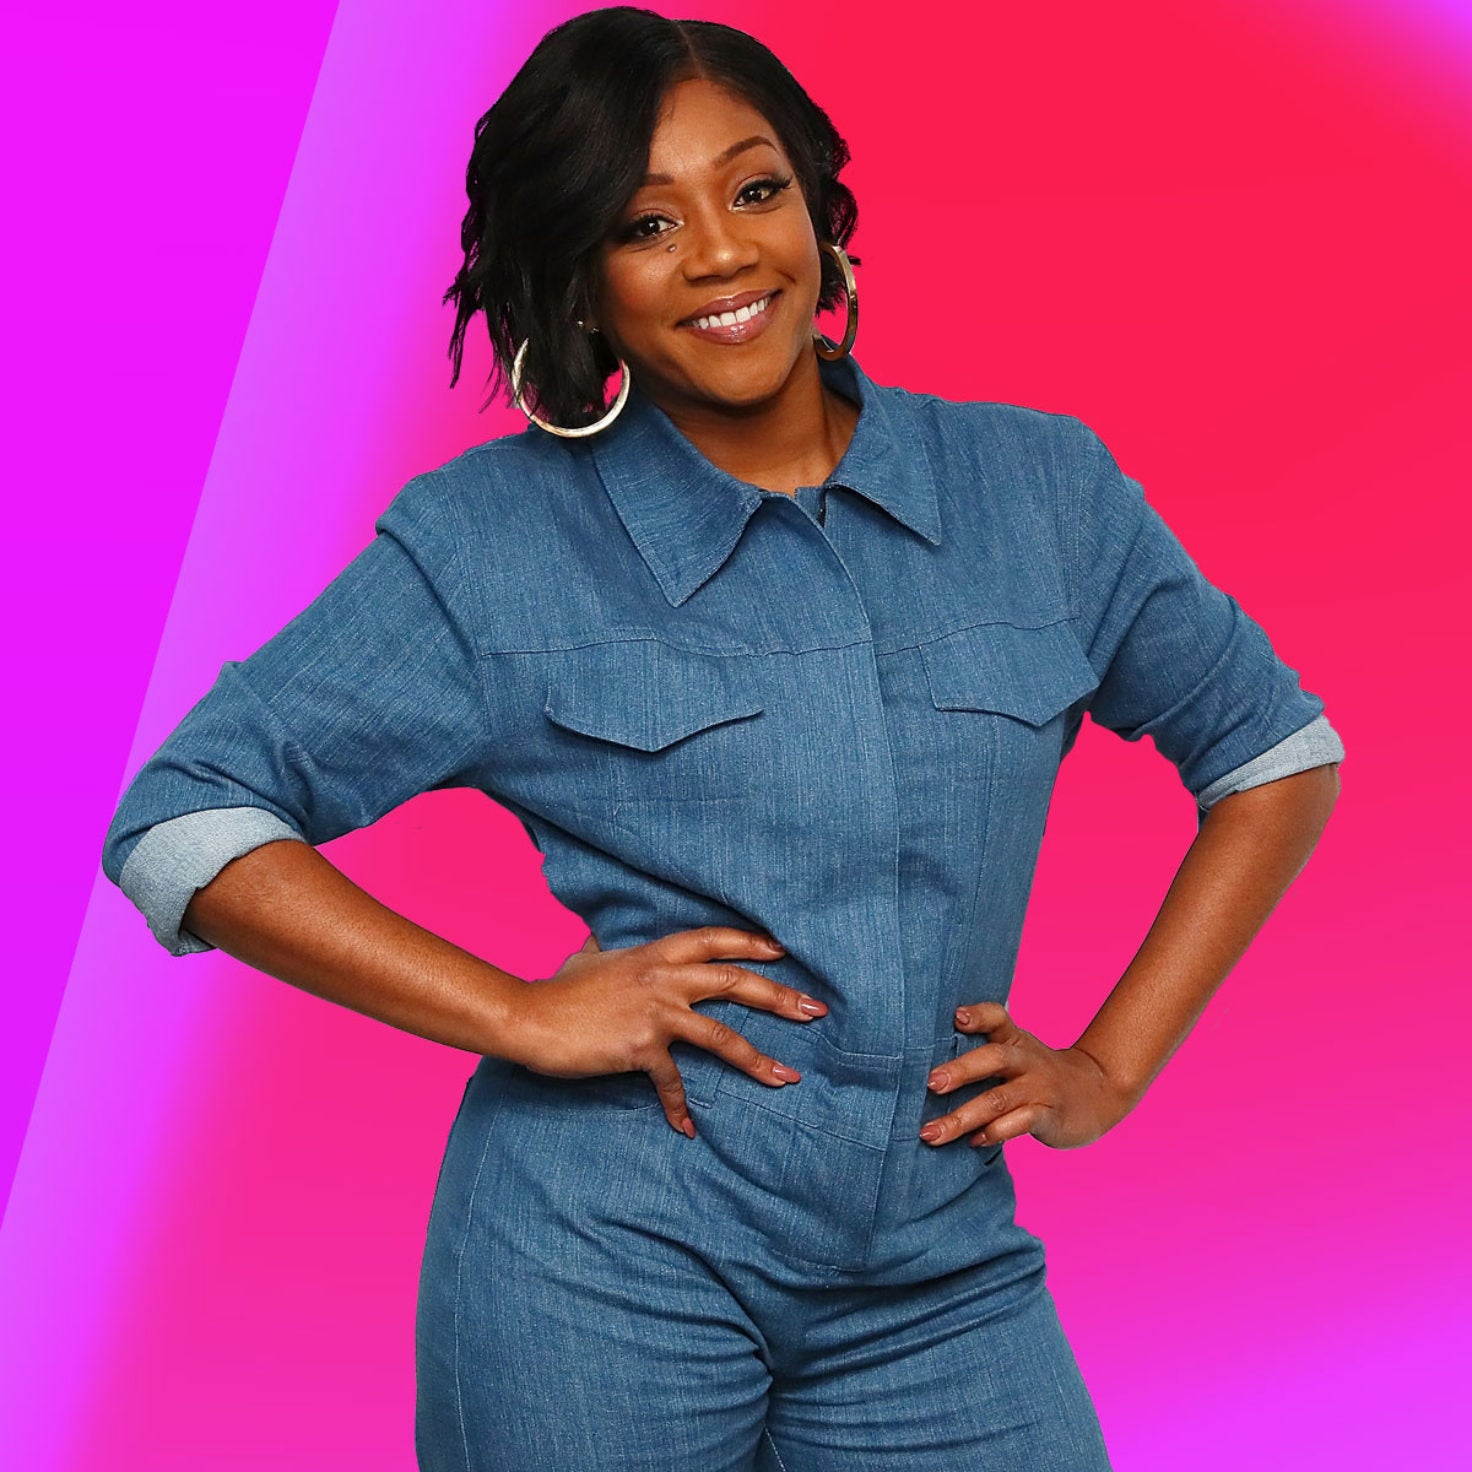 Tiffany Haddish Gives A Word On Crying Past Your Pain